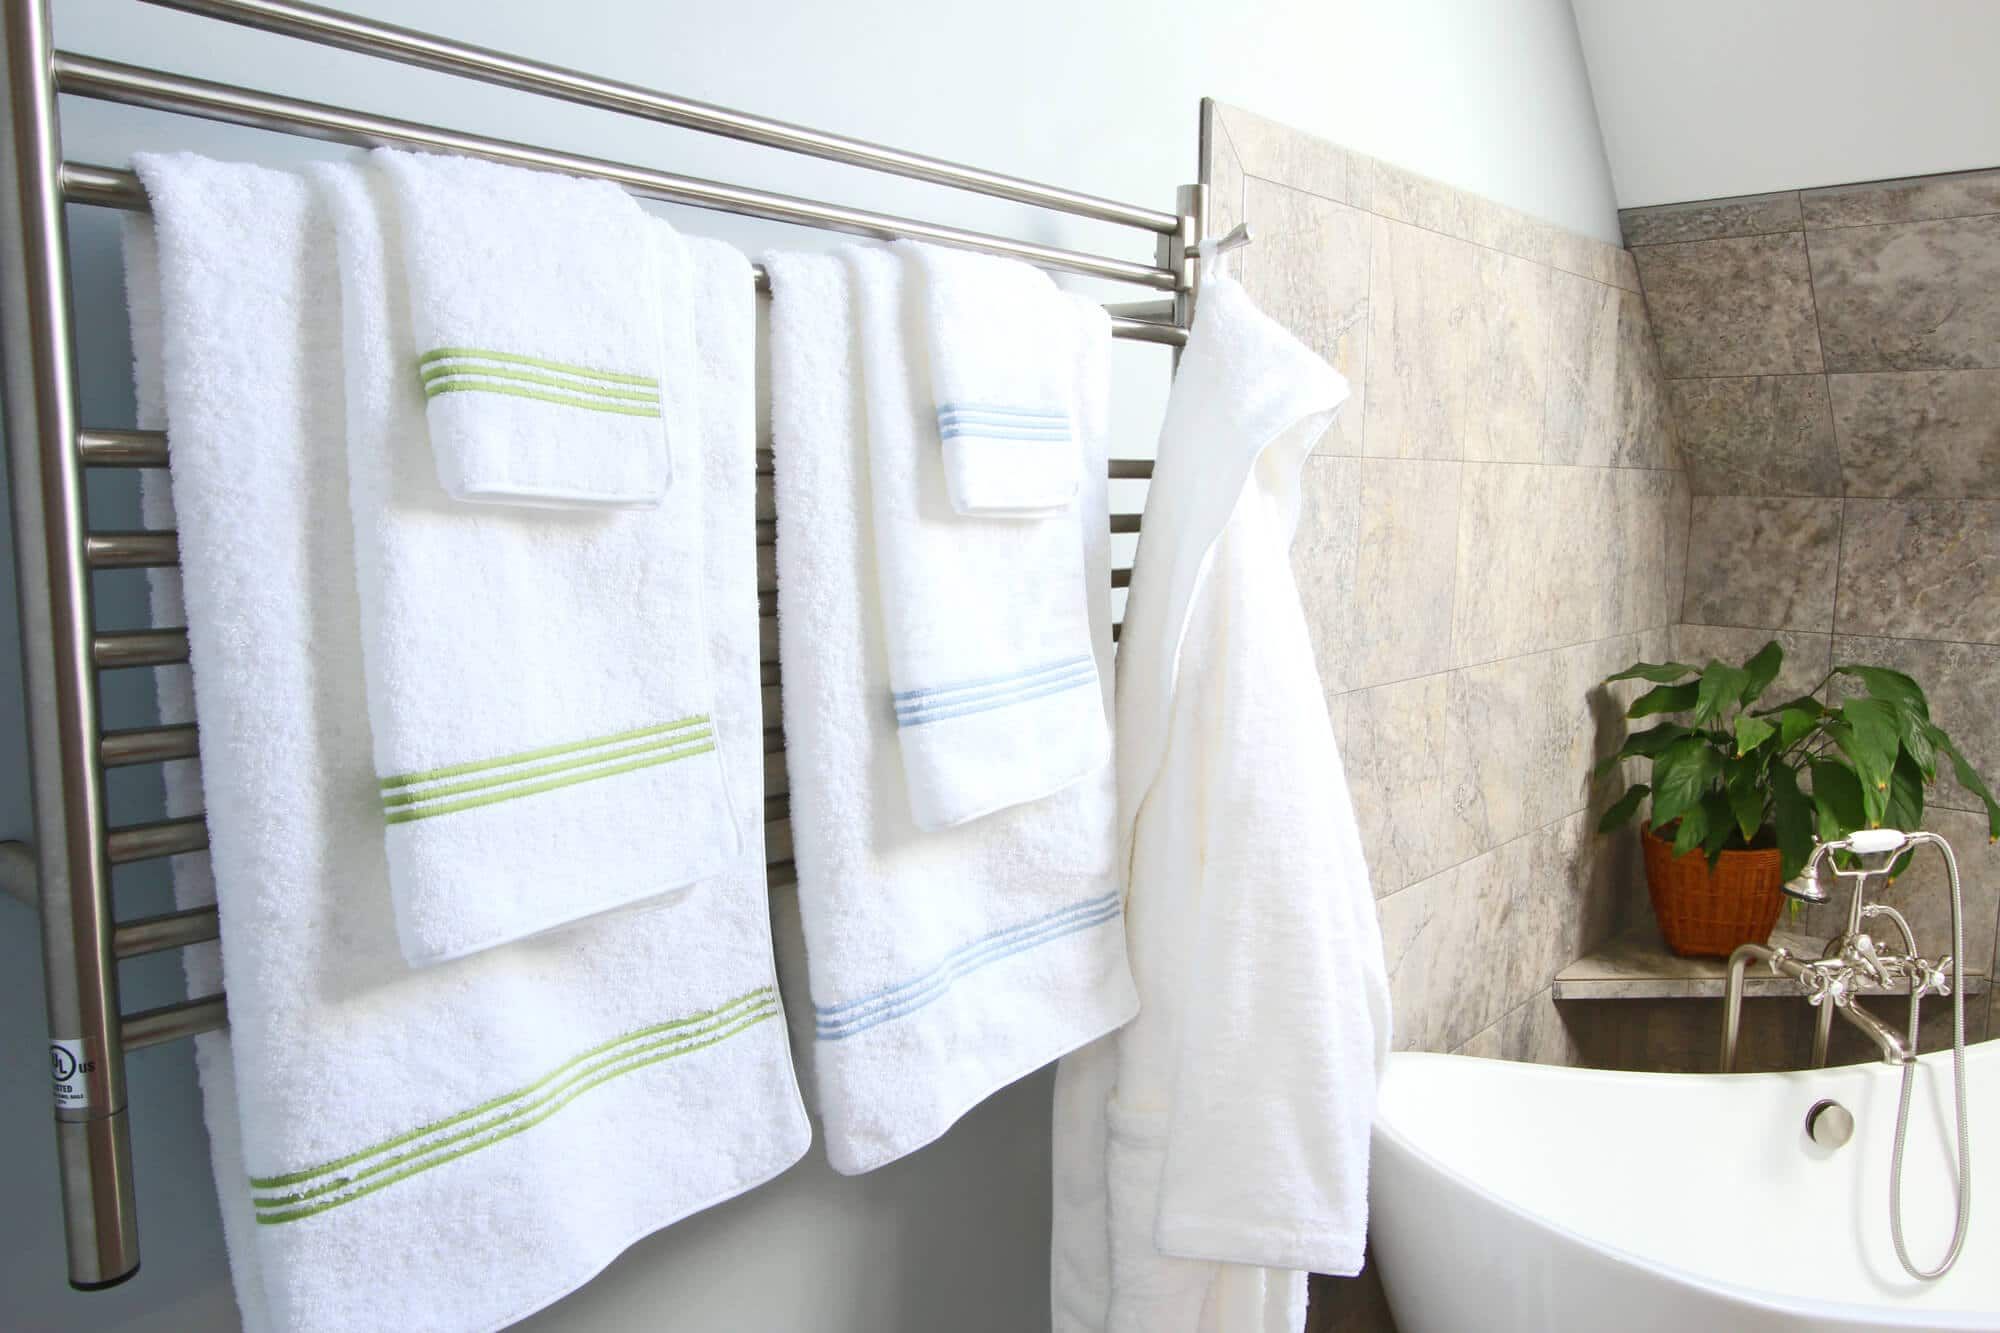 Bringing Vacation Home: Towel Warmers - The Daring Gourmet